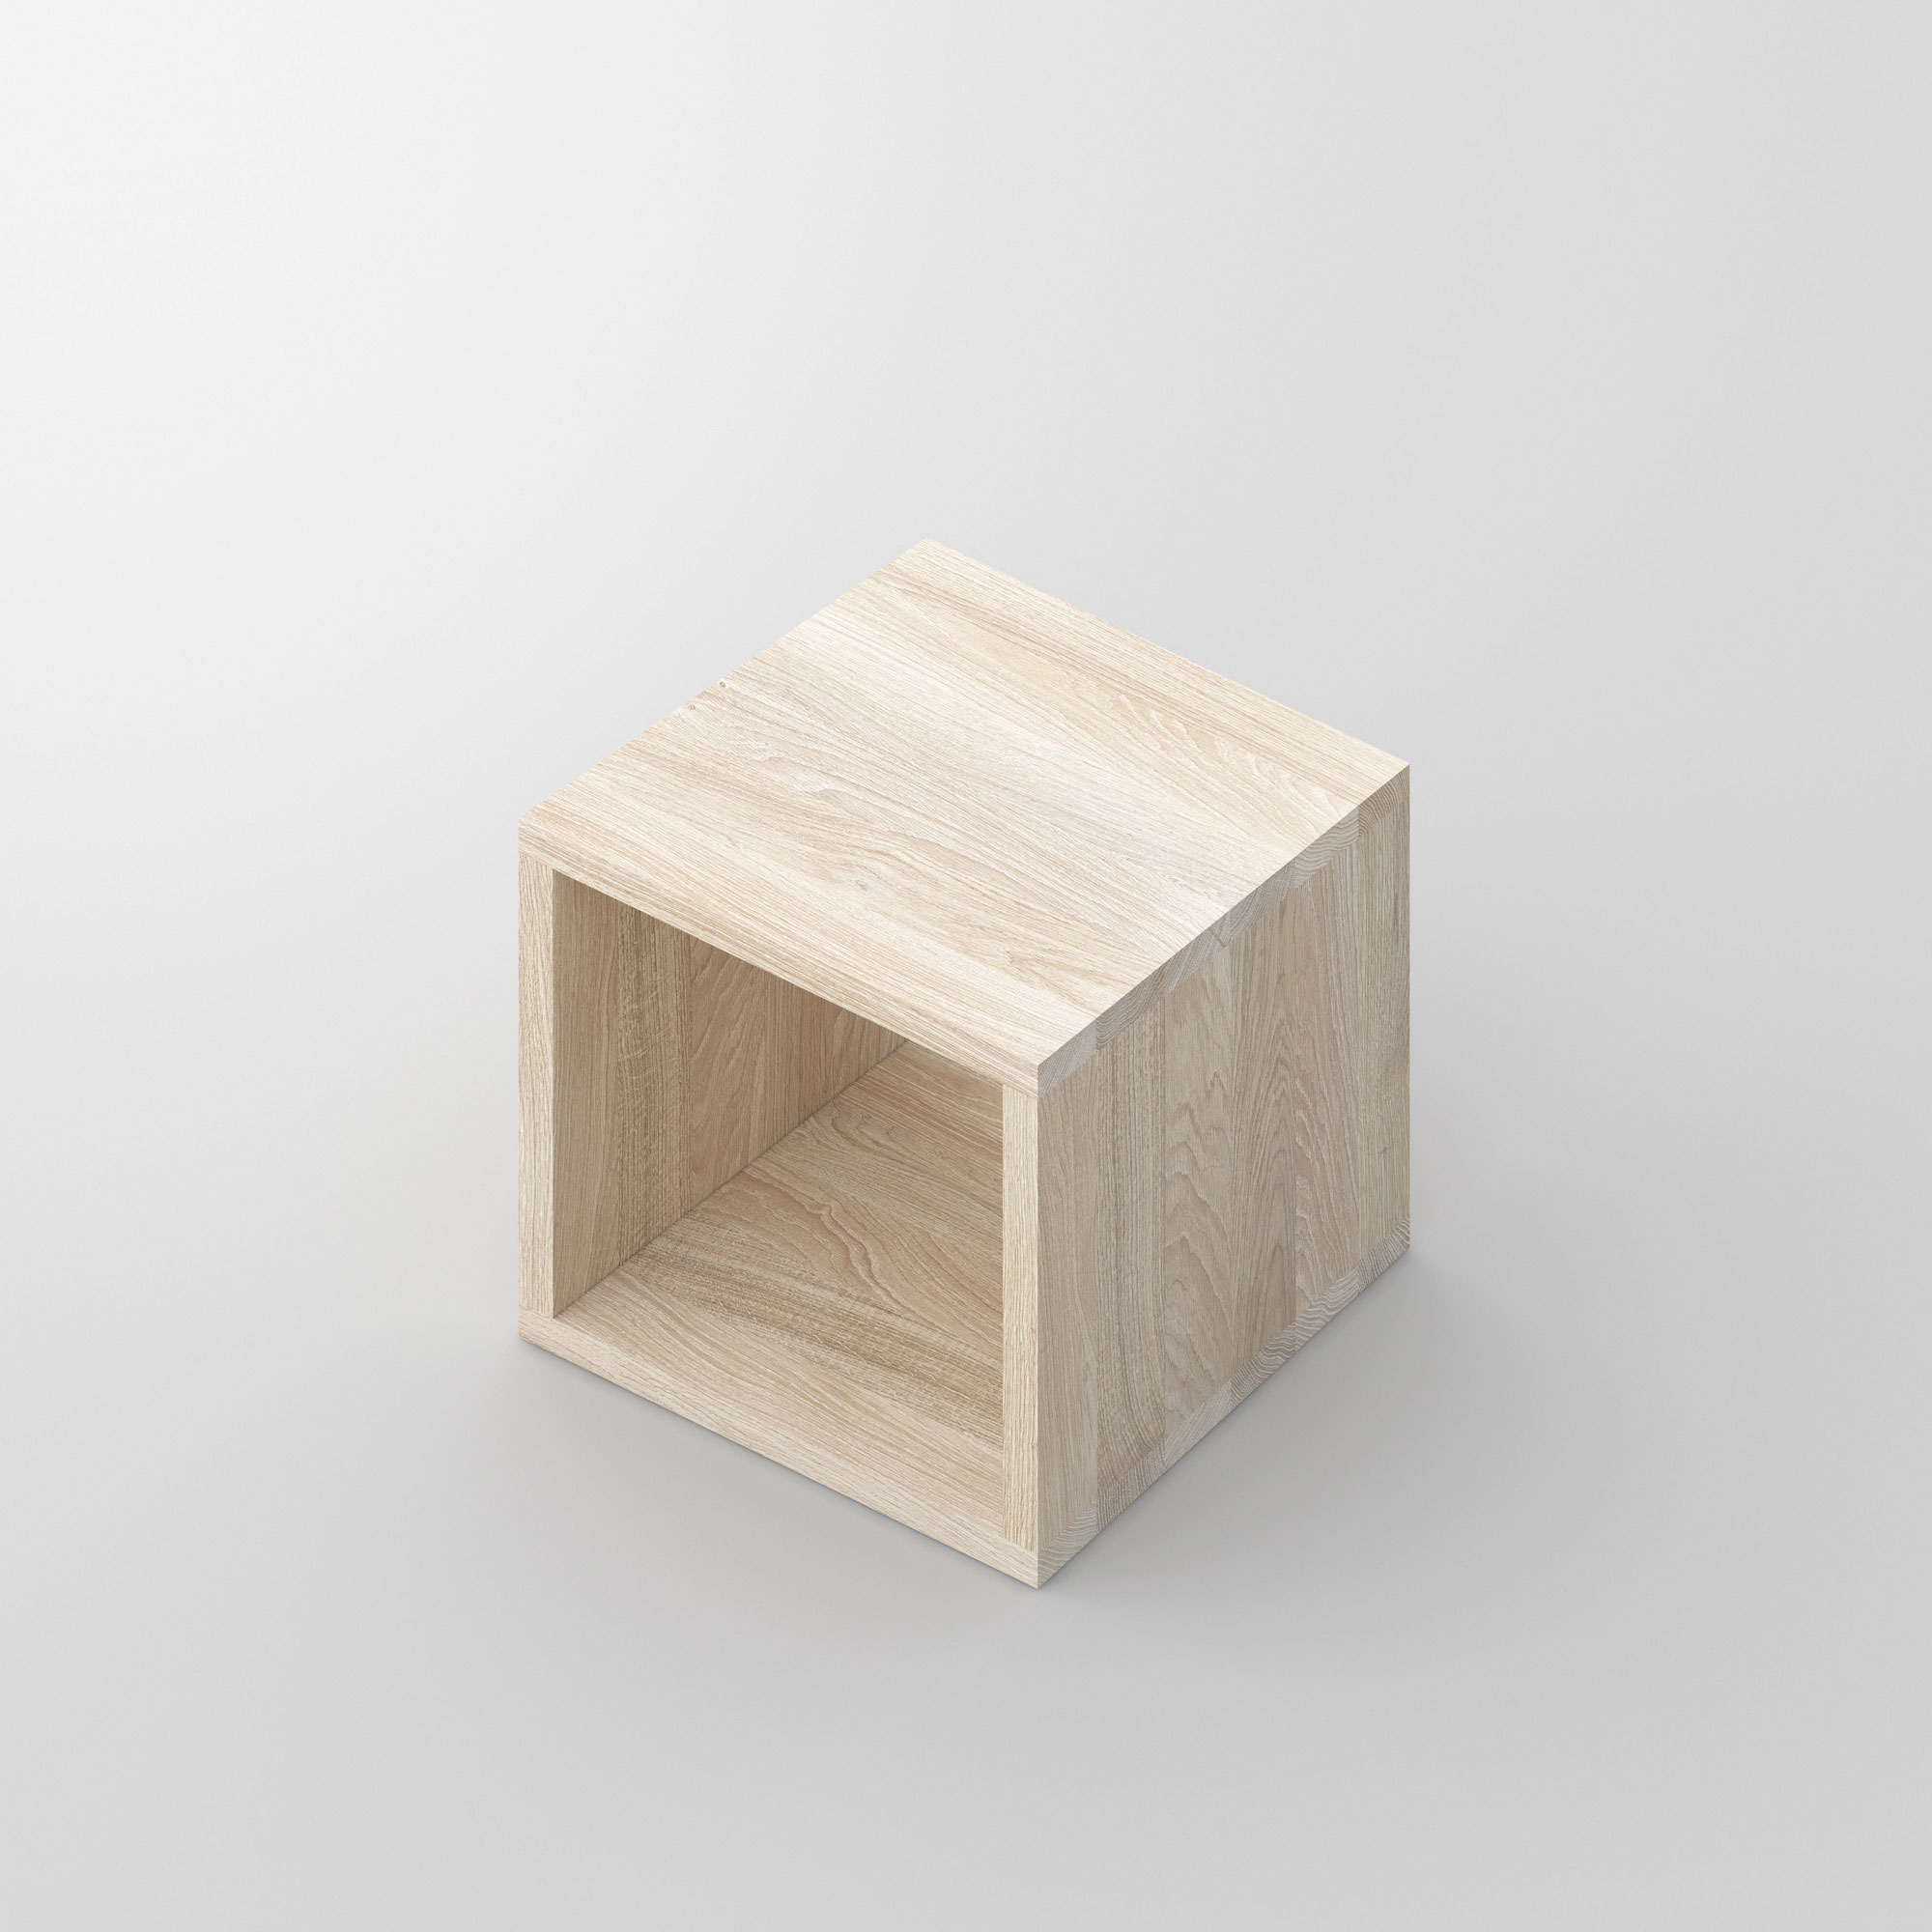 Solid Wood Night Table MENA B cam3 custom made in solid wood by vitamin design